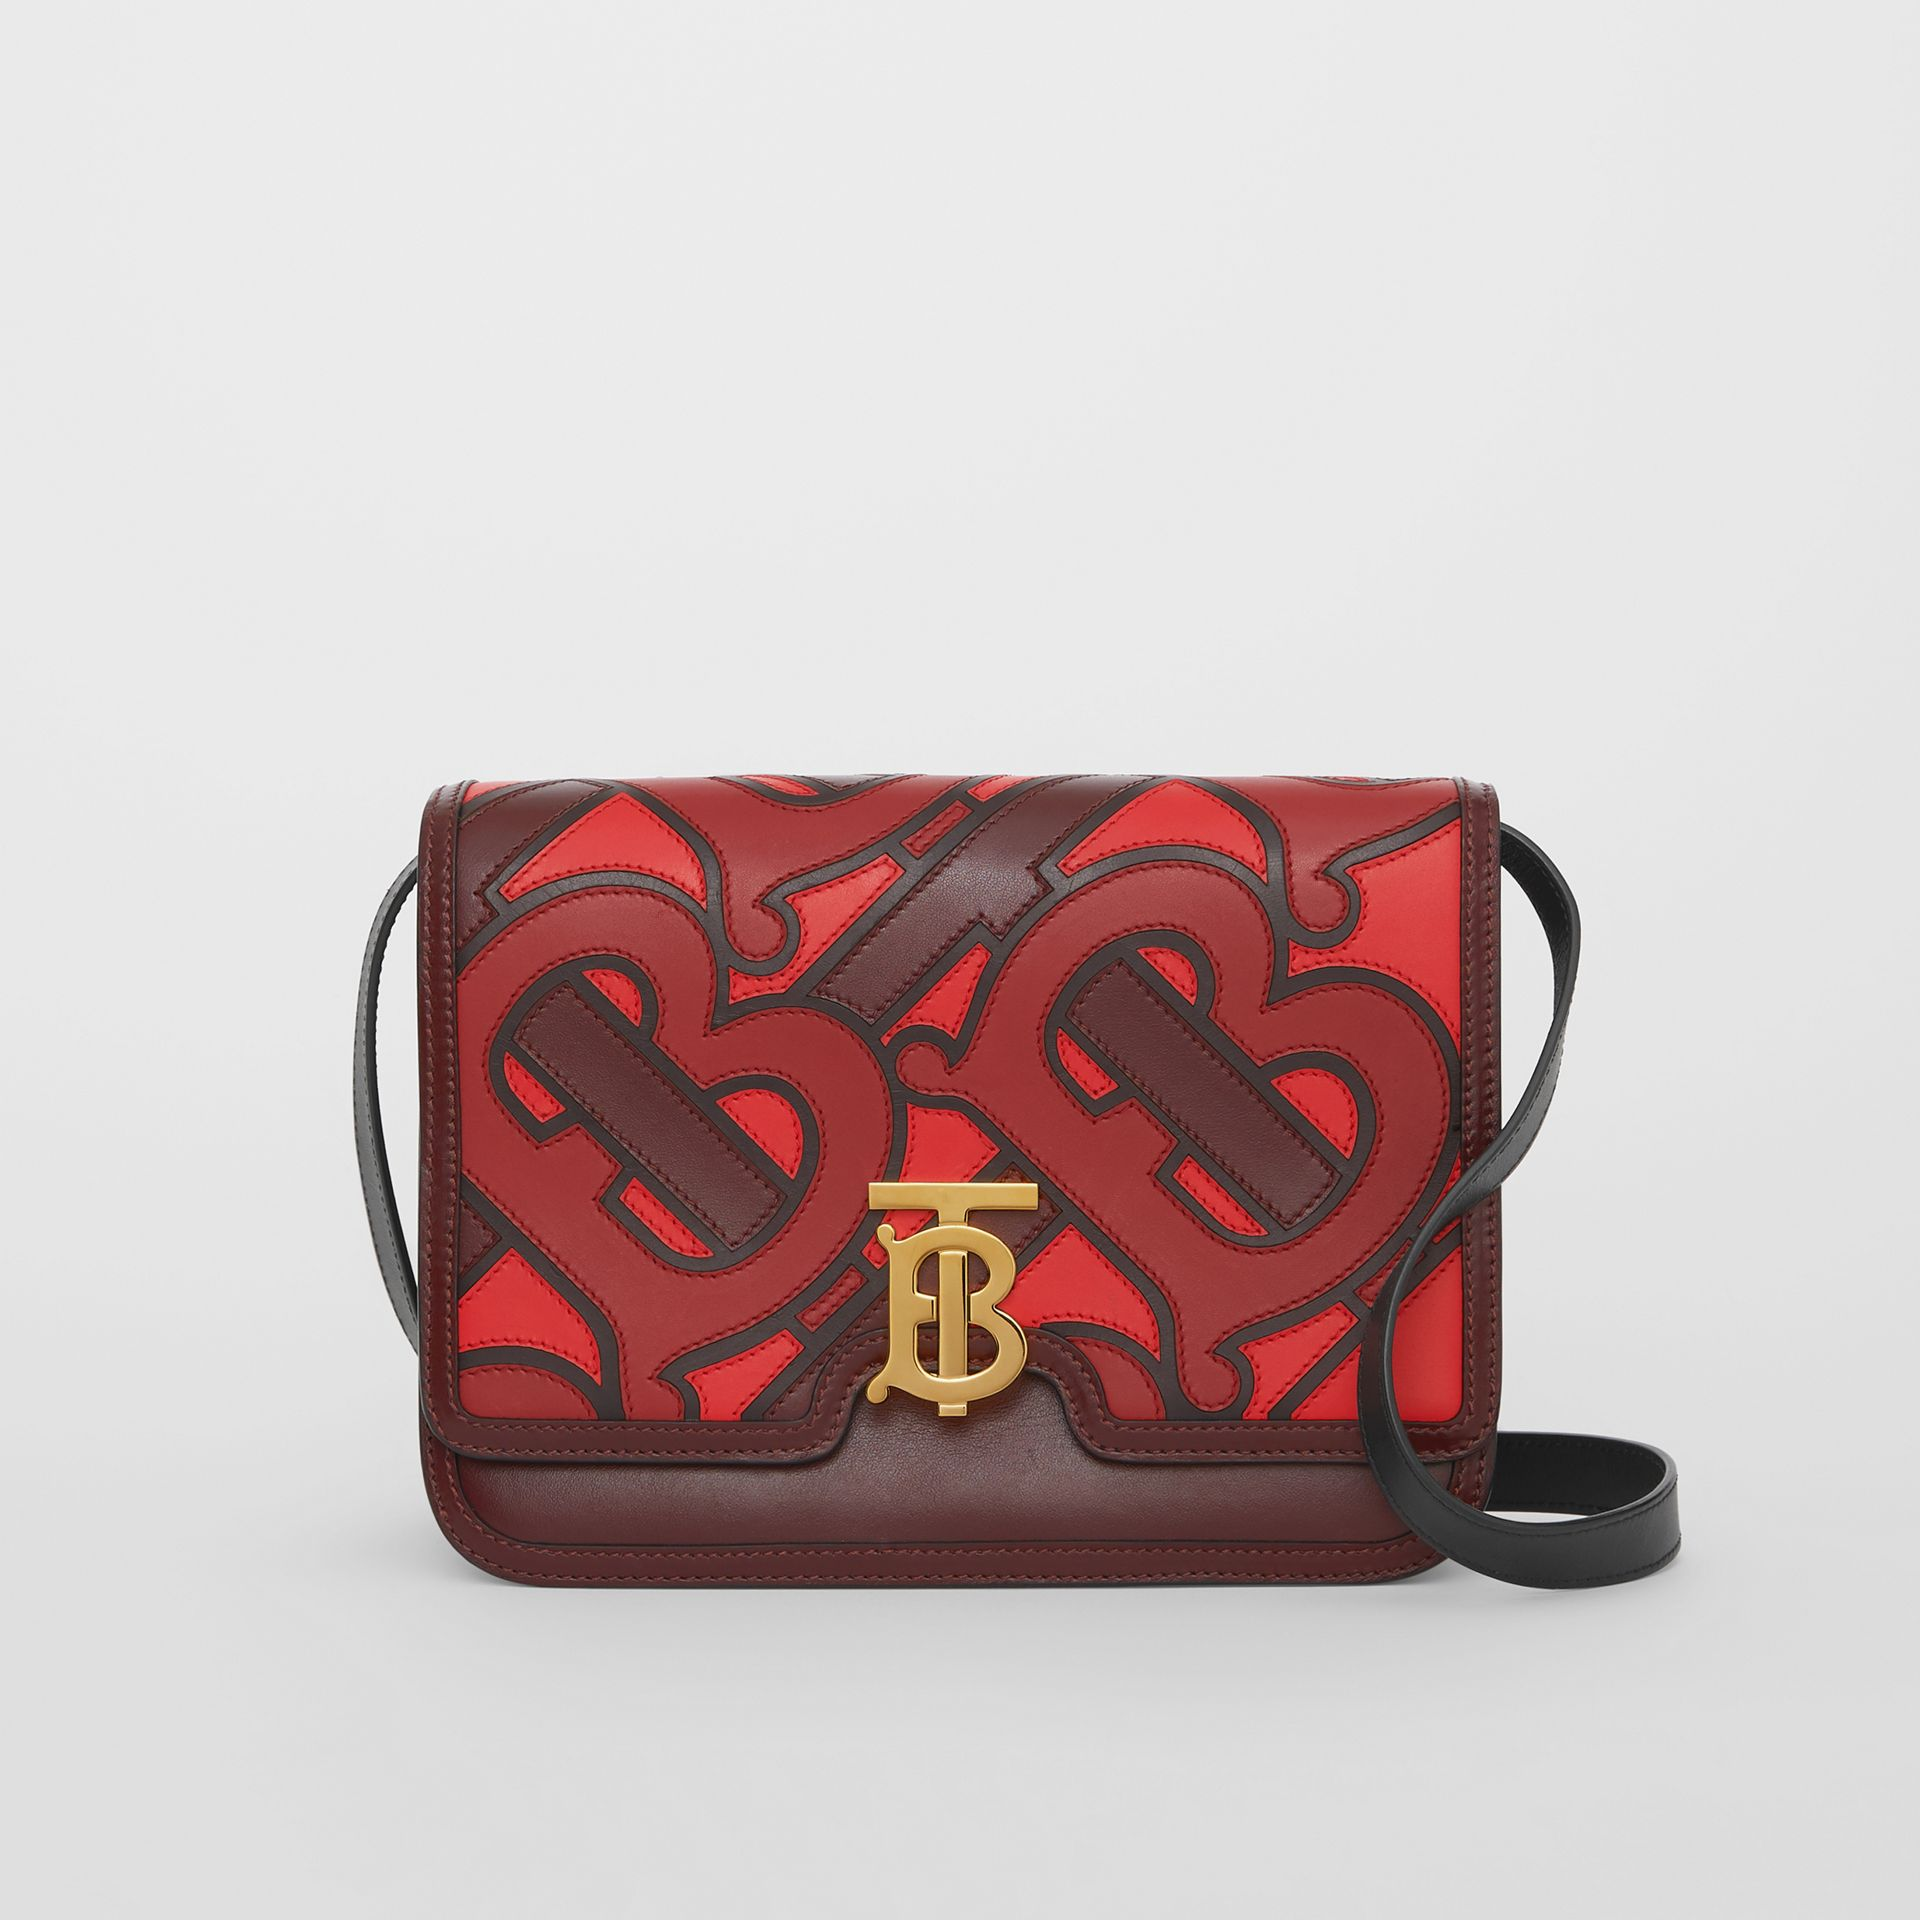 Medium Monogram Appliqué Leather TB Bag in Oxblood - Women | Burberry Hong Kong - gallery image 0